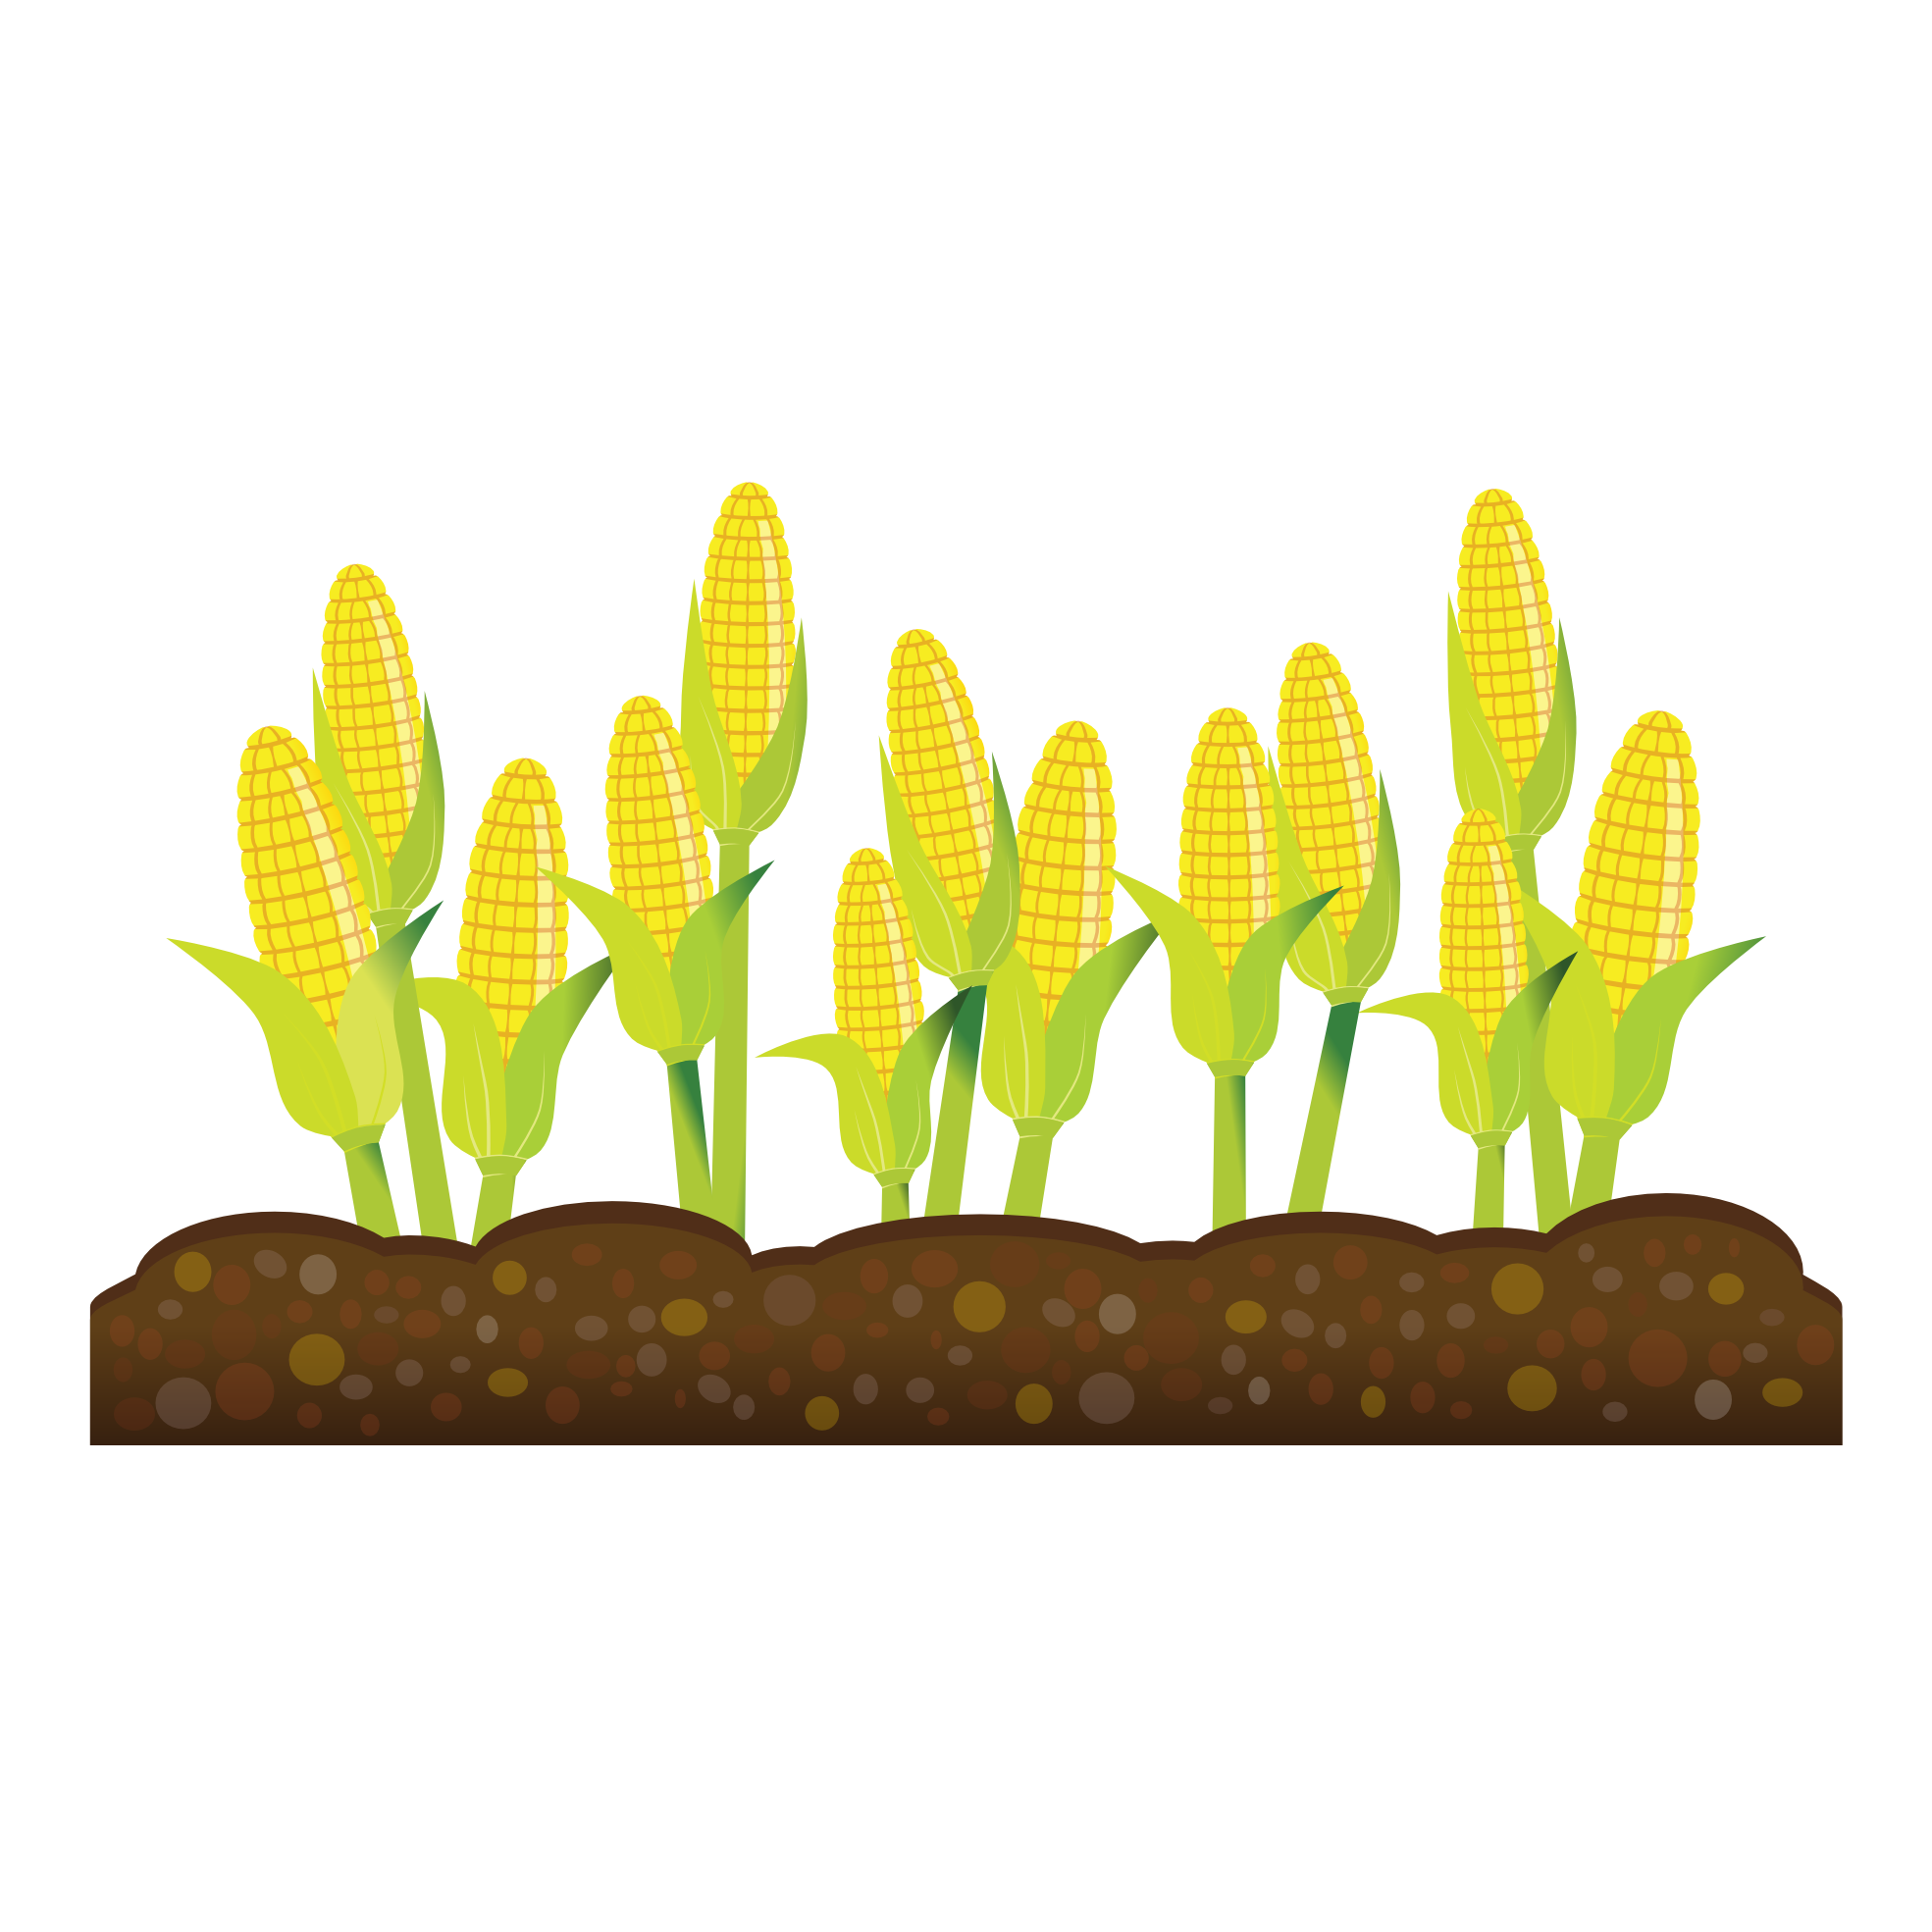 Cornfield clipart svg transparent Corn field clip art clipart images gallery for free download ... svg transparent